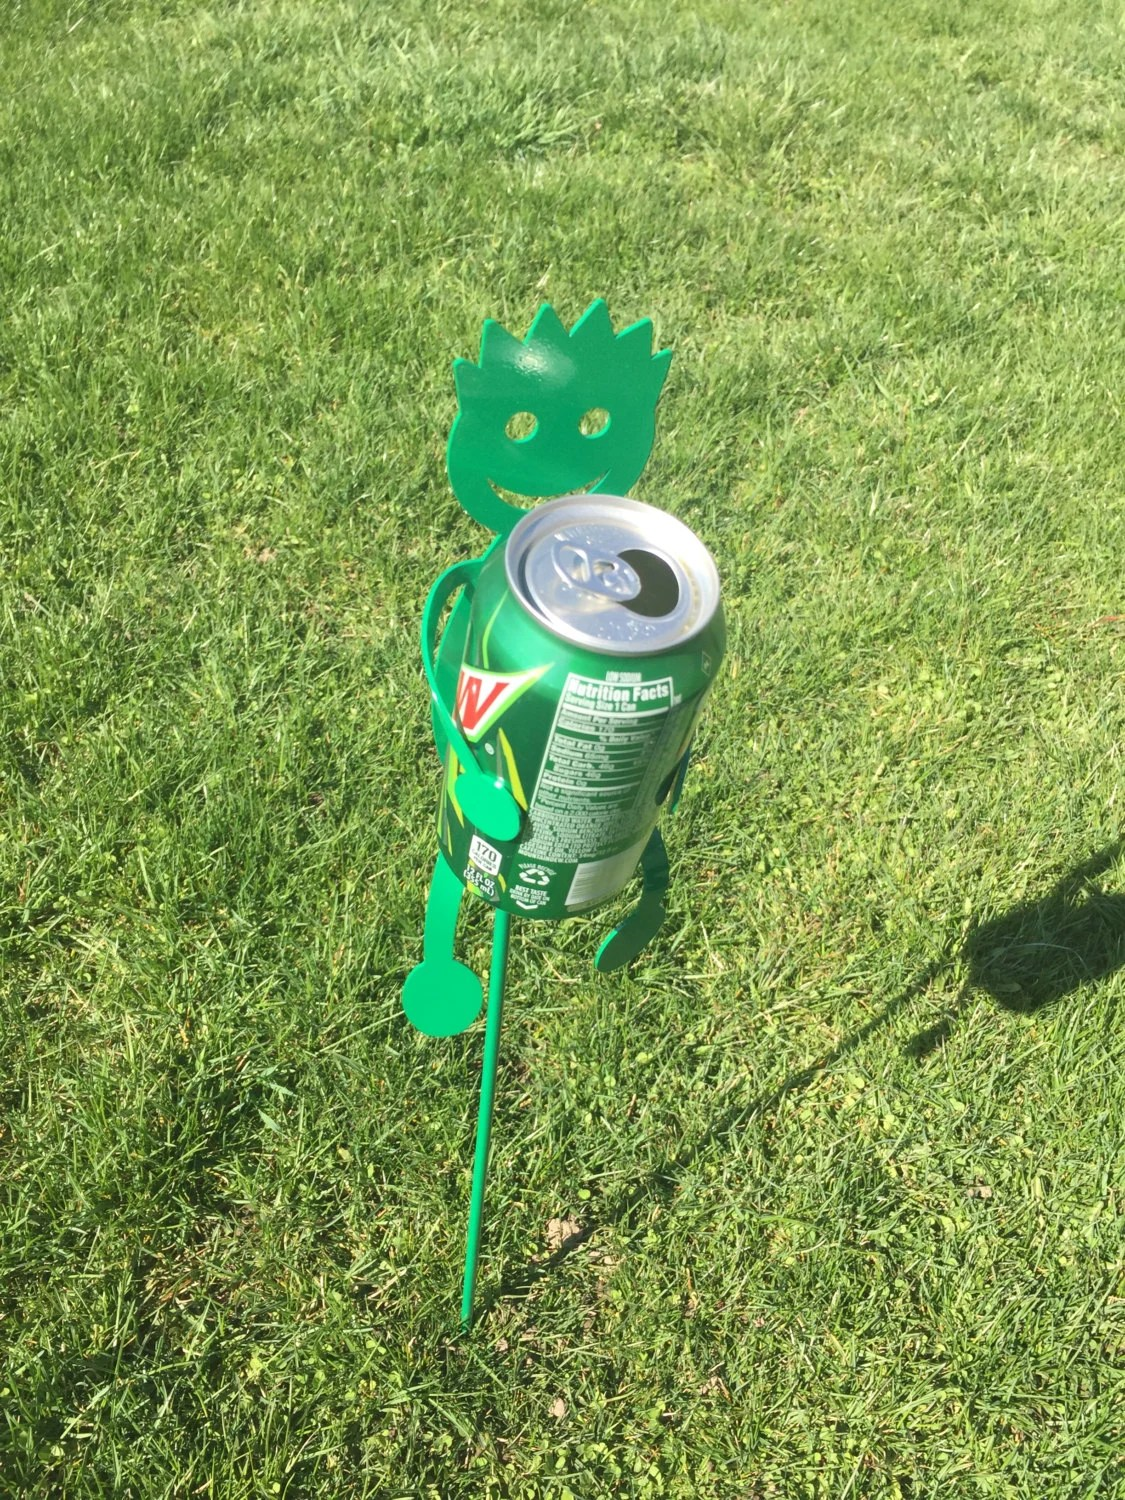 Drink holders for the yard Green by SCHROCKMETALFX on Etsy